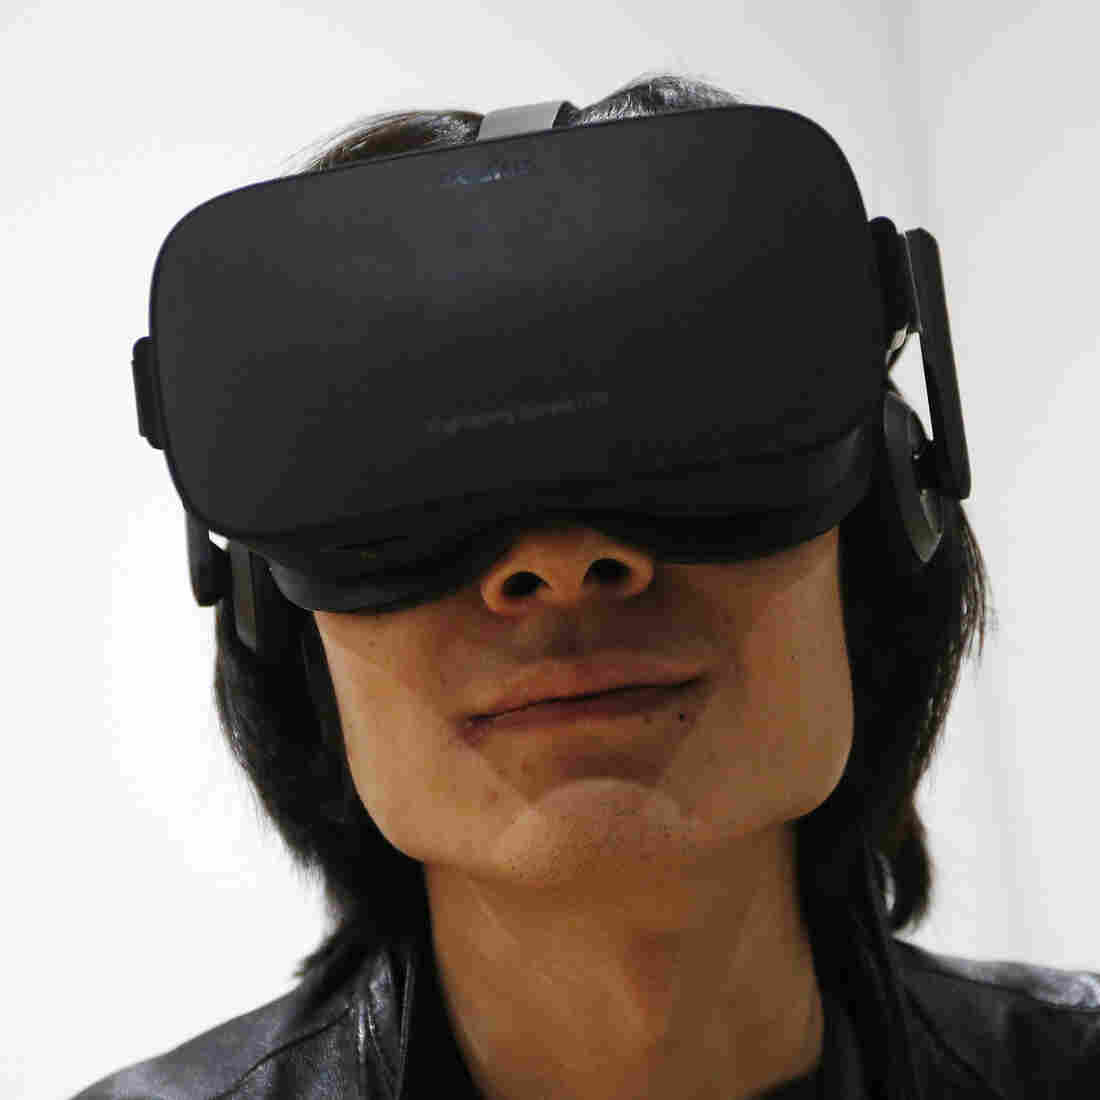 Is Oculus Rift's $600 Price Too High For Virtual Reality To Succeed?